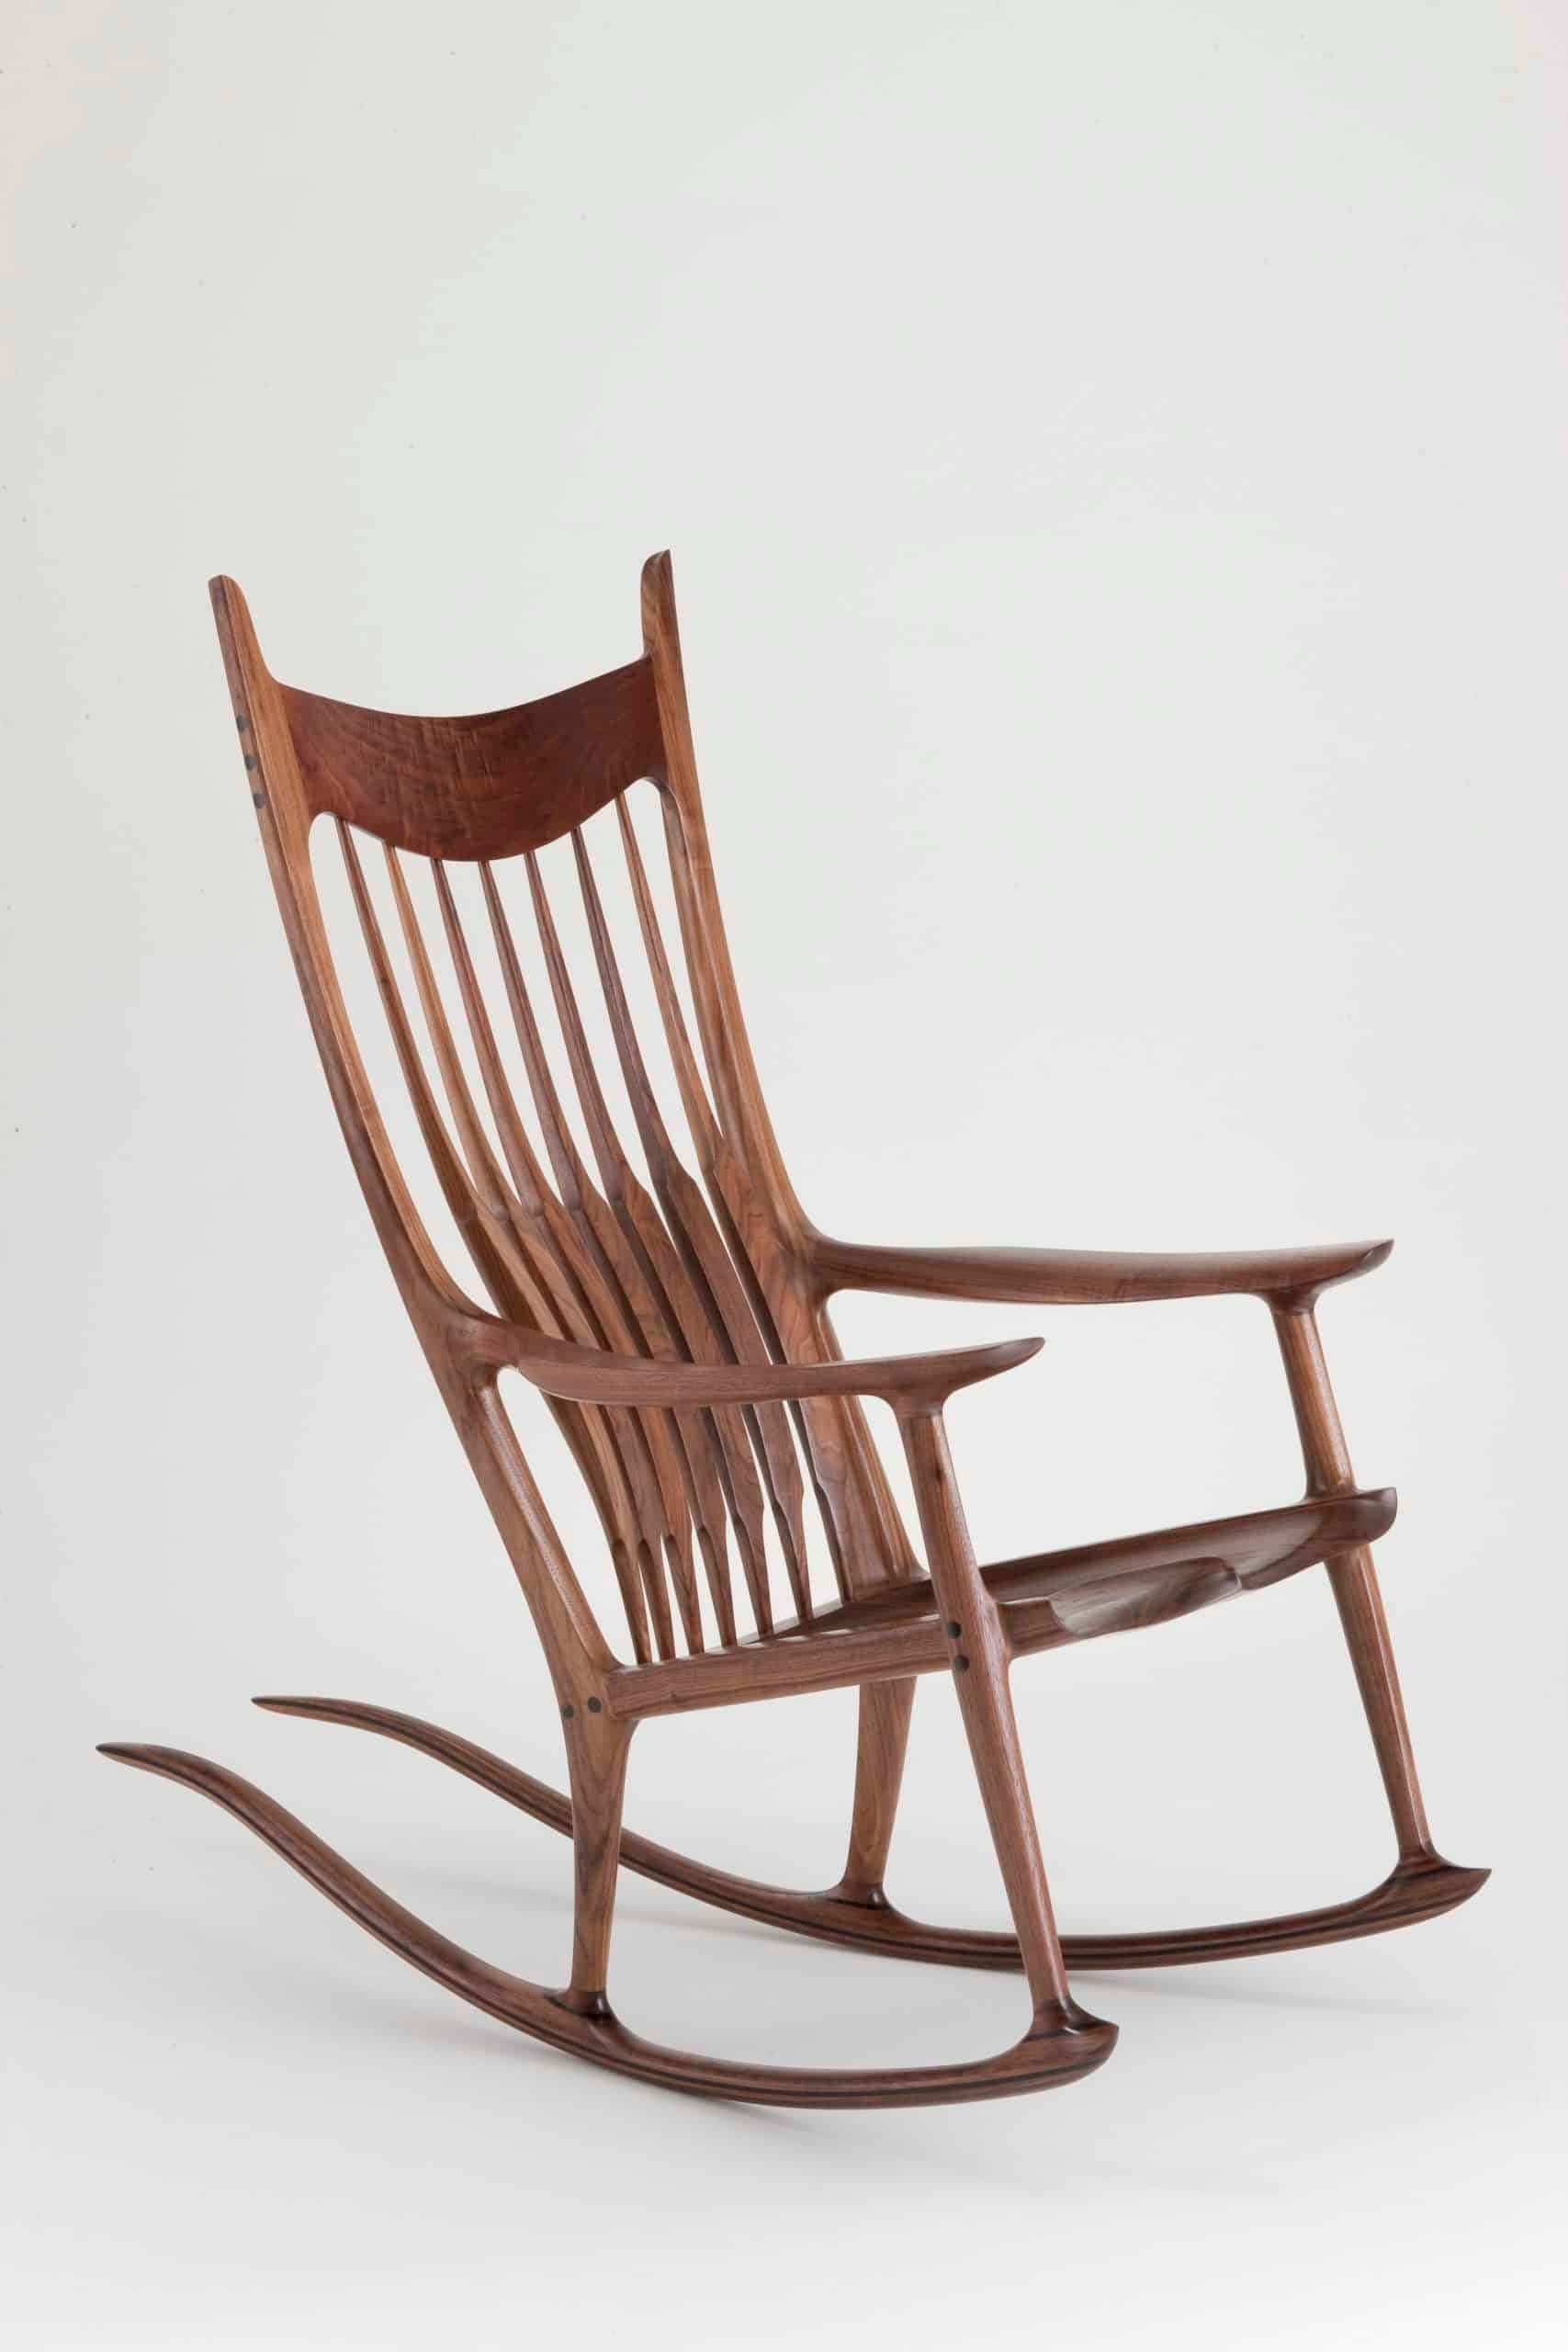 Rocking chair - Chair